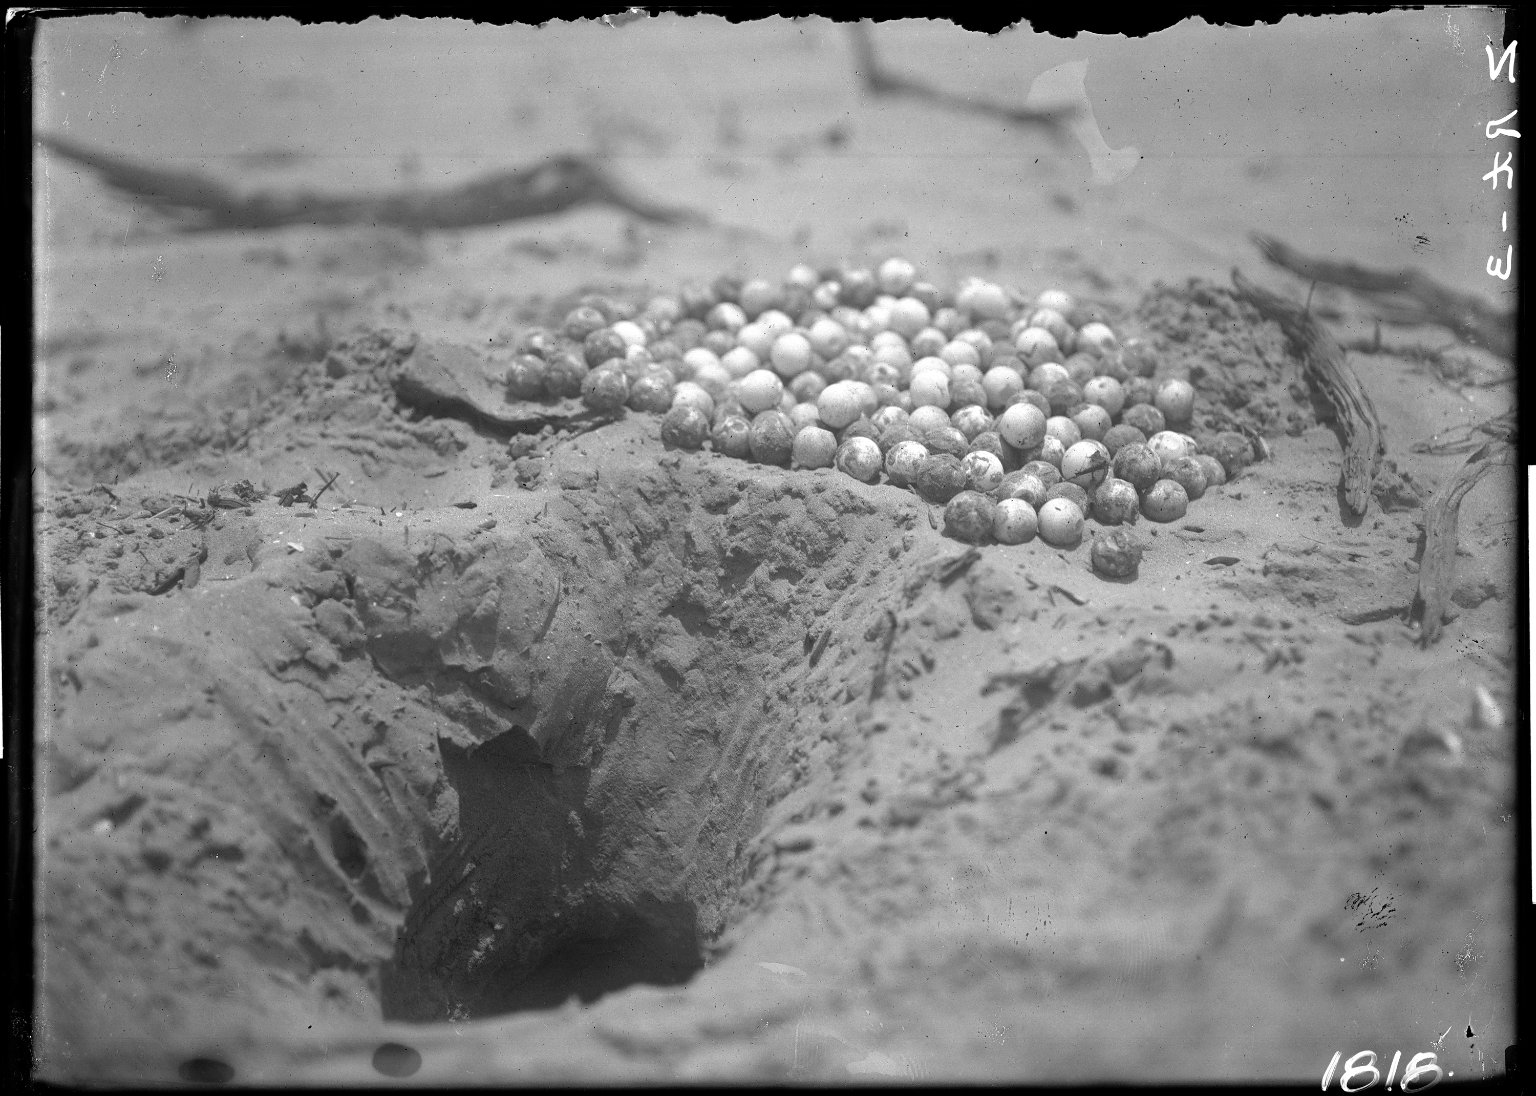 Turtle eggs & cavity where deposited